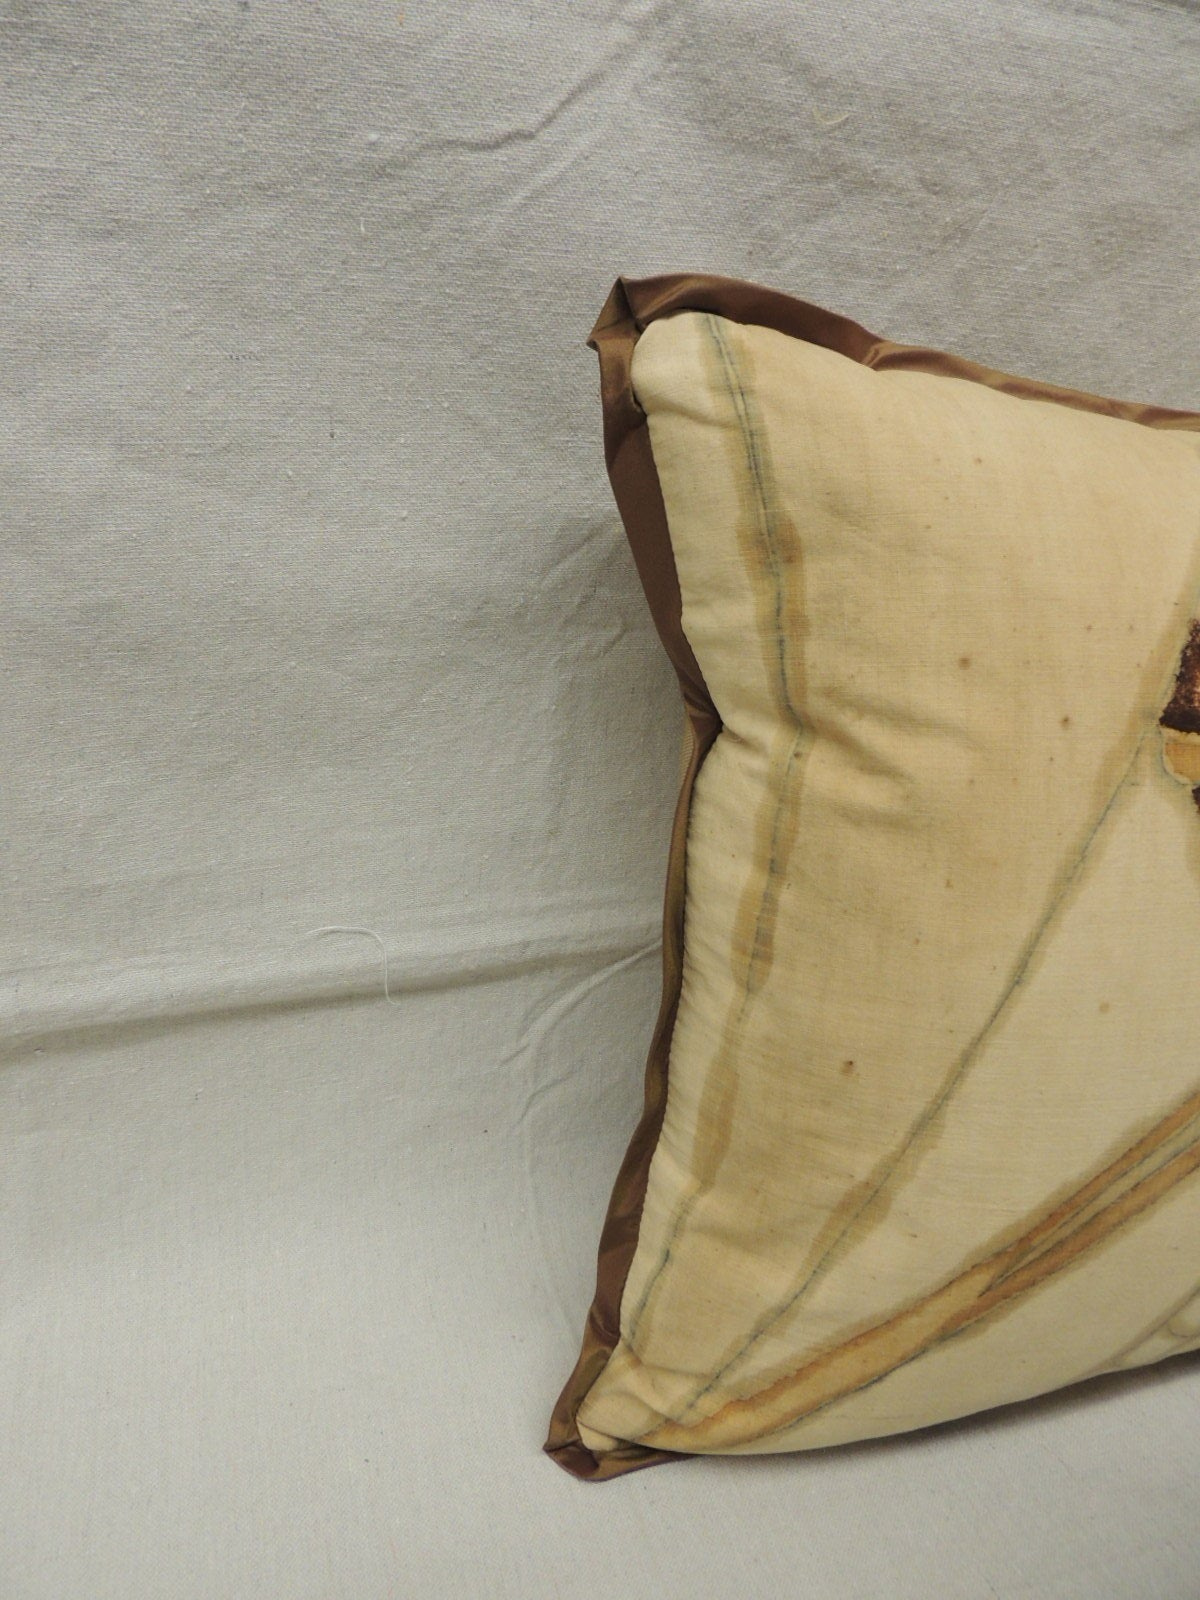 Art deco hand painted linen square pillow at 1stdibs for Hand painted pillows